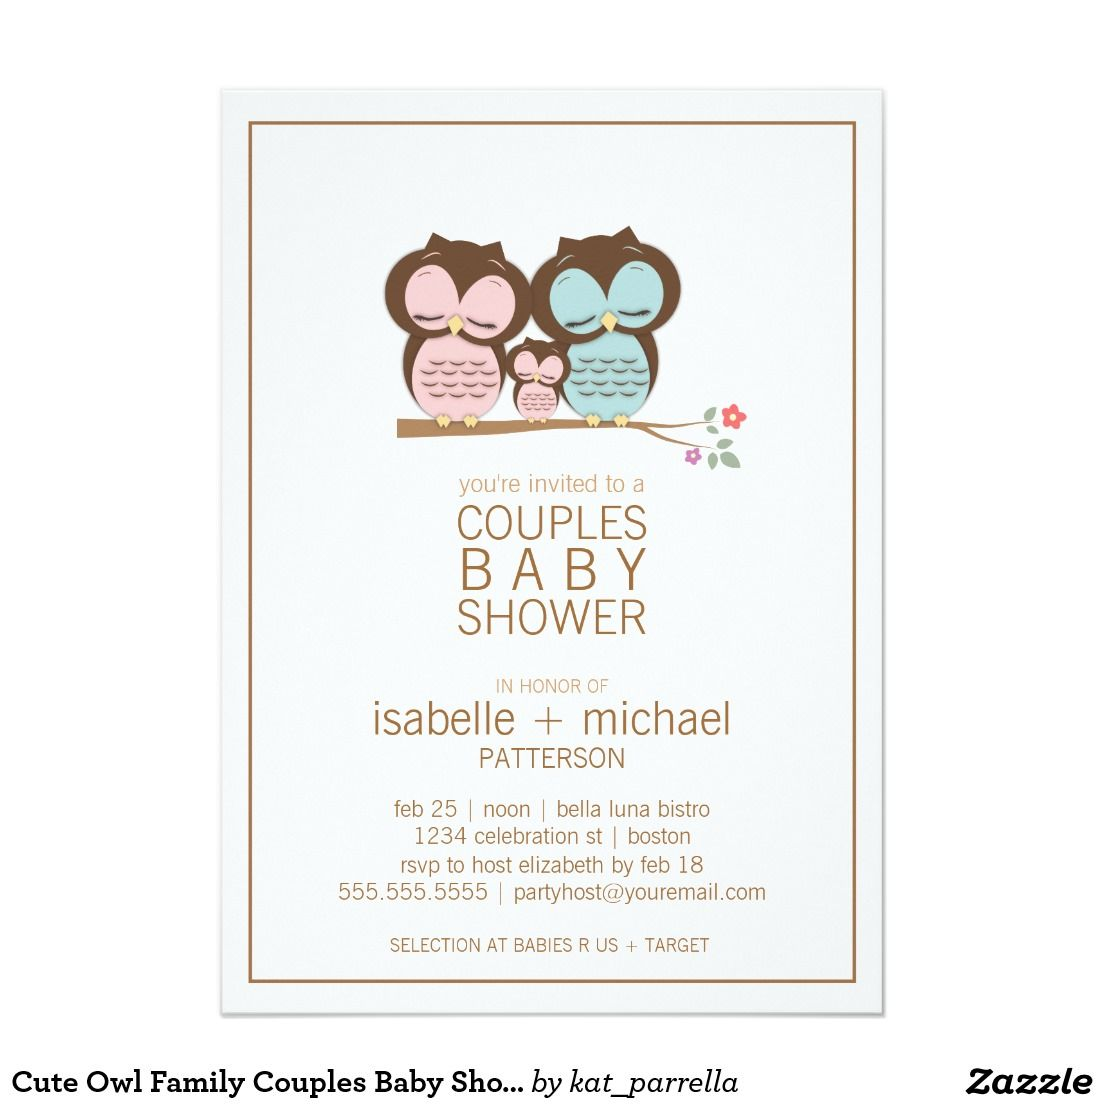 Cute Owl Family Couples Baby Shower Invitation | Couples baby ...